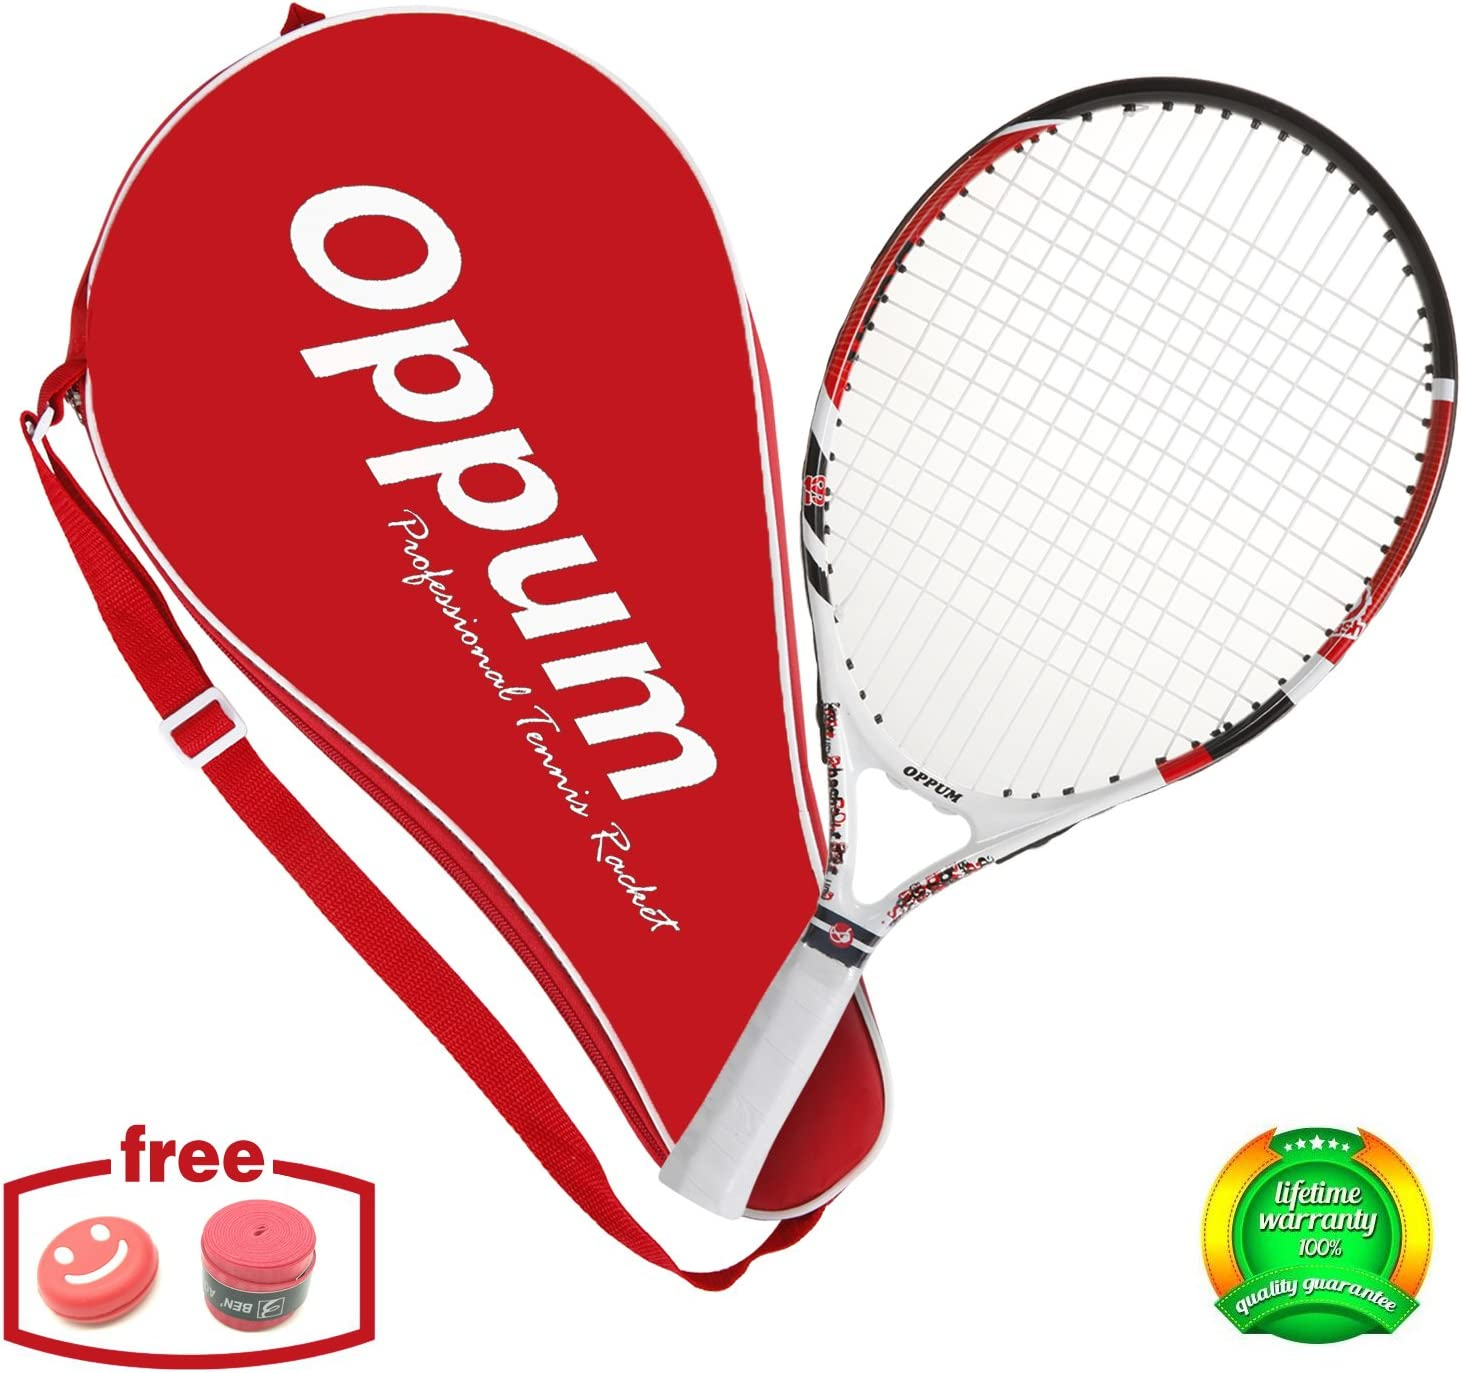 oppum US Open Junior Tennis Racket for Kids Children Toddlers, Coach Recommended Racquet, Include Tennis Bag Overgrip Vibration Dampener